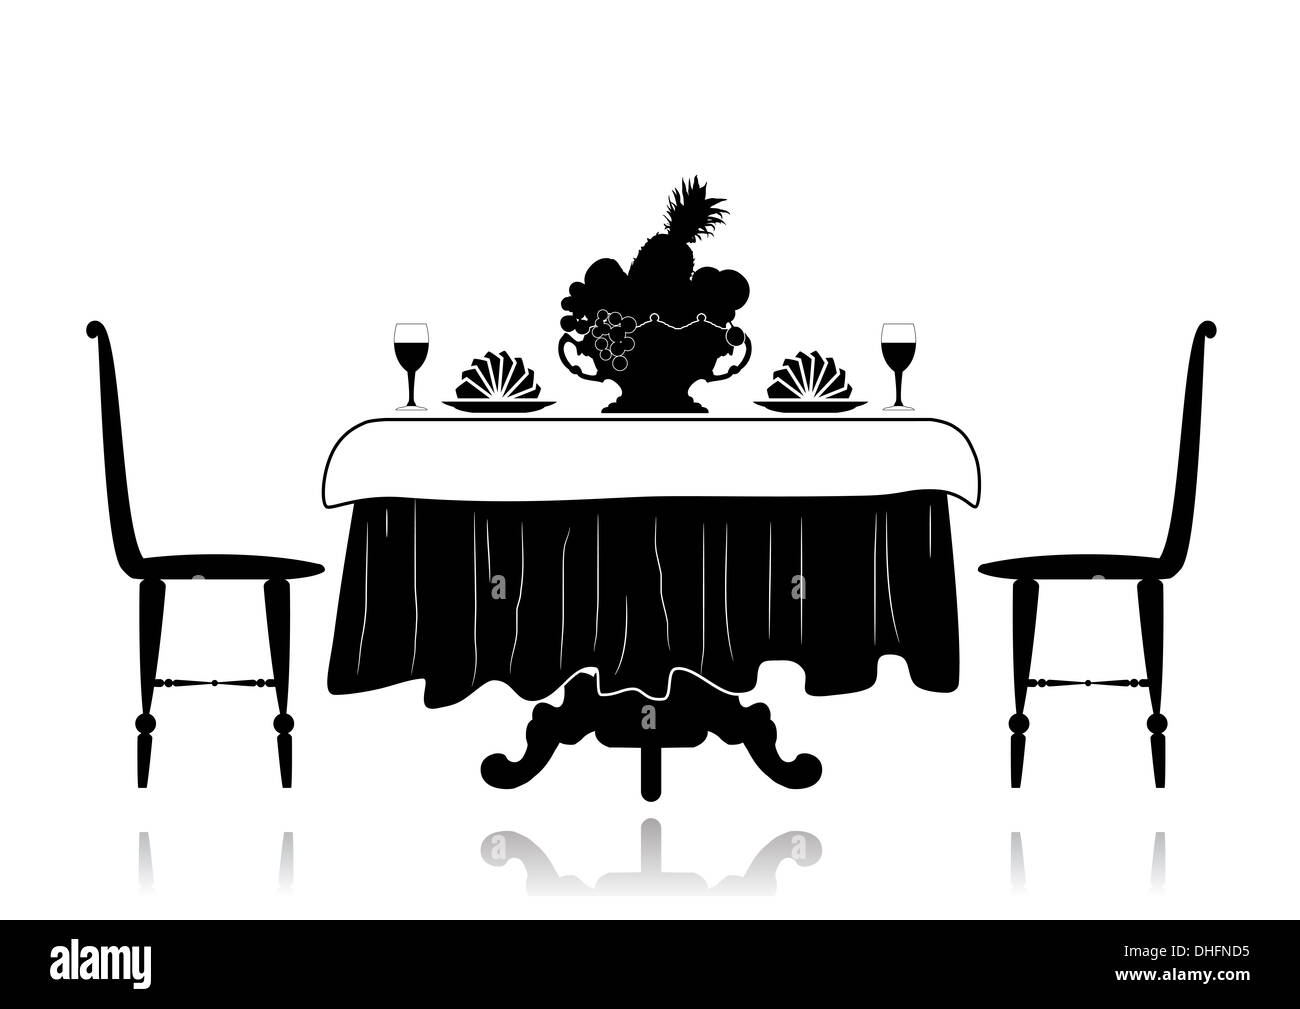 Restaurant tables and chairs clipart - Silhouette Restaurant Table With Chairs A Tablecloth A Vase With Fruit Napkins And Glasses